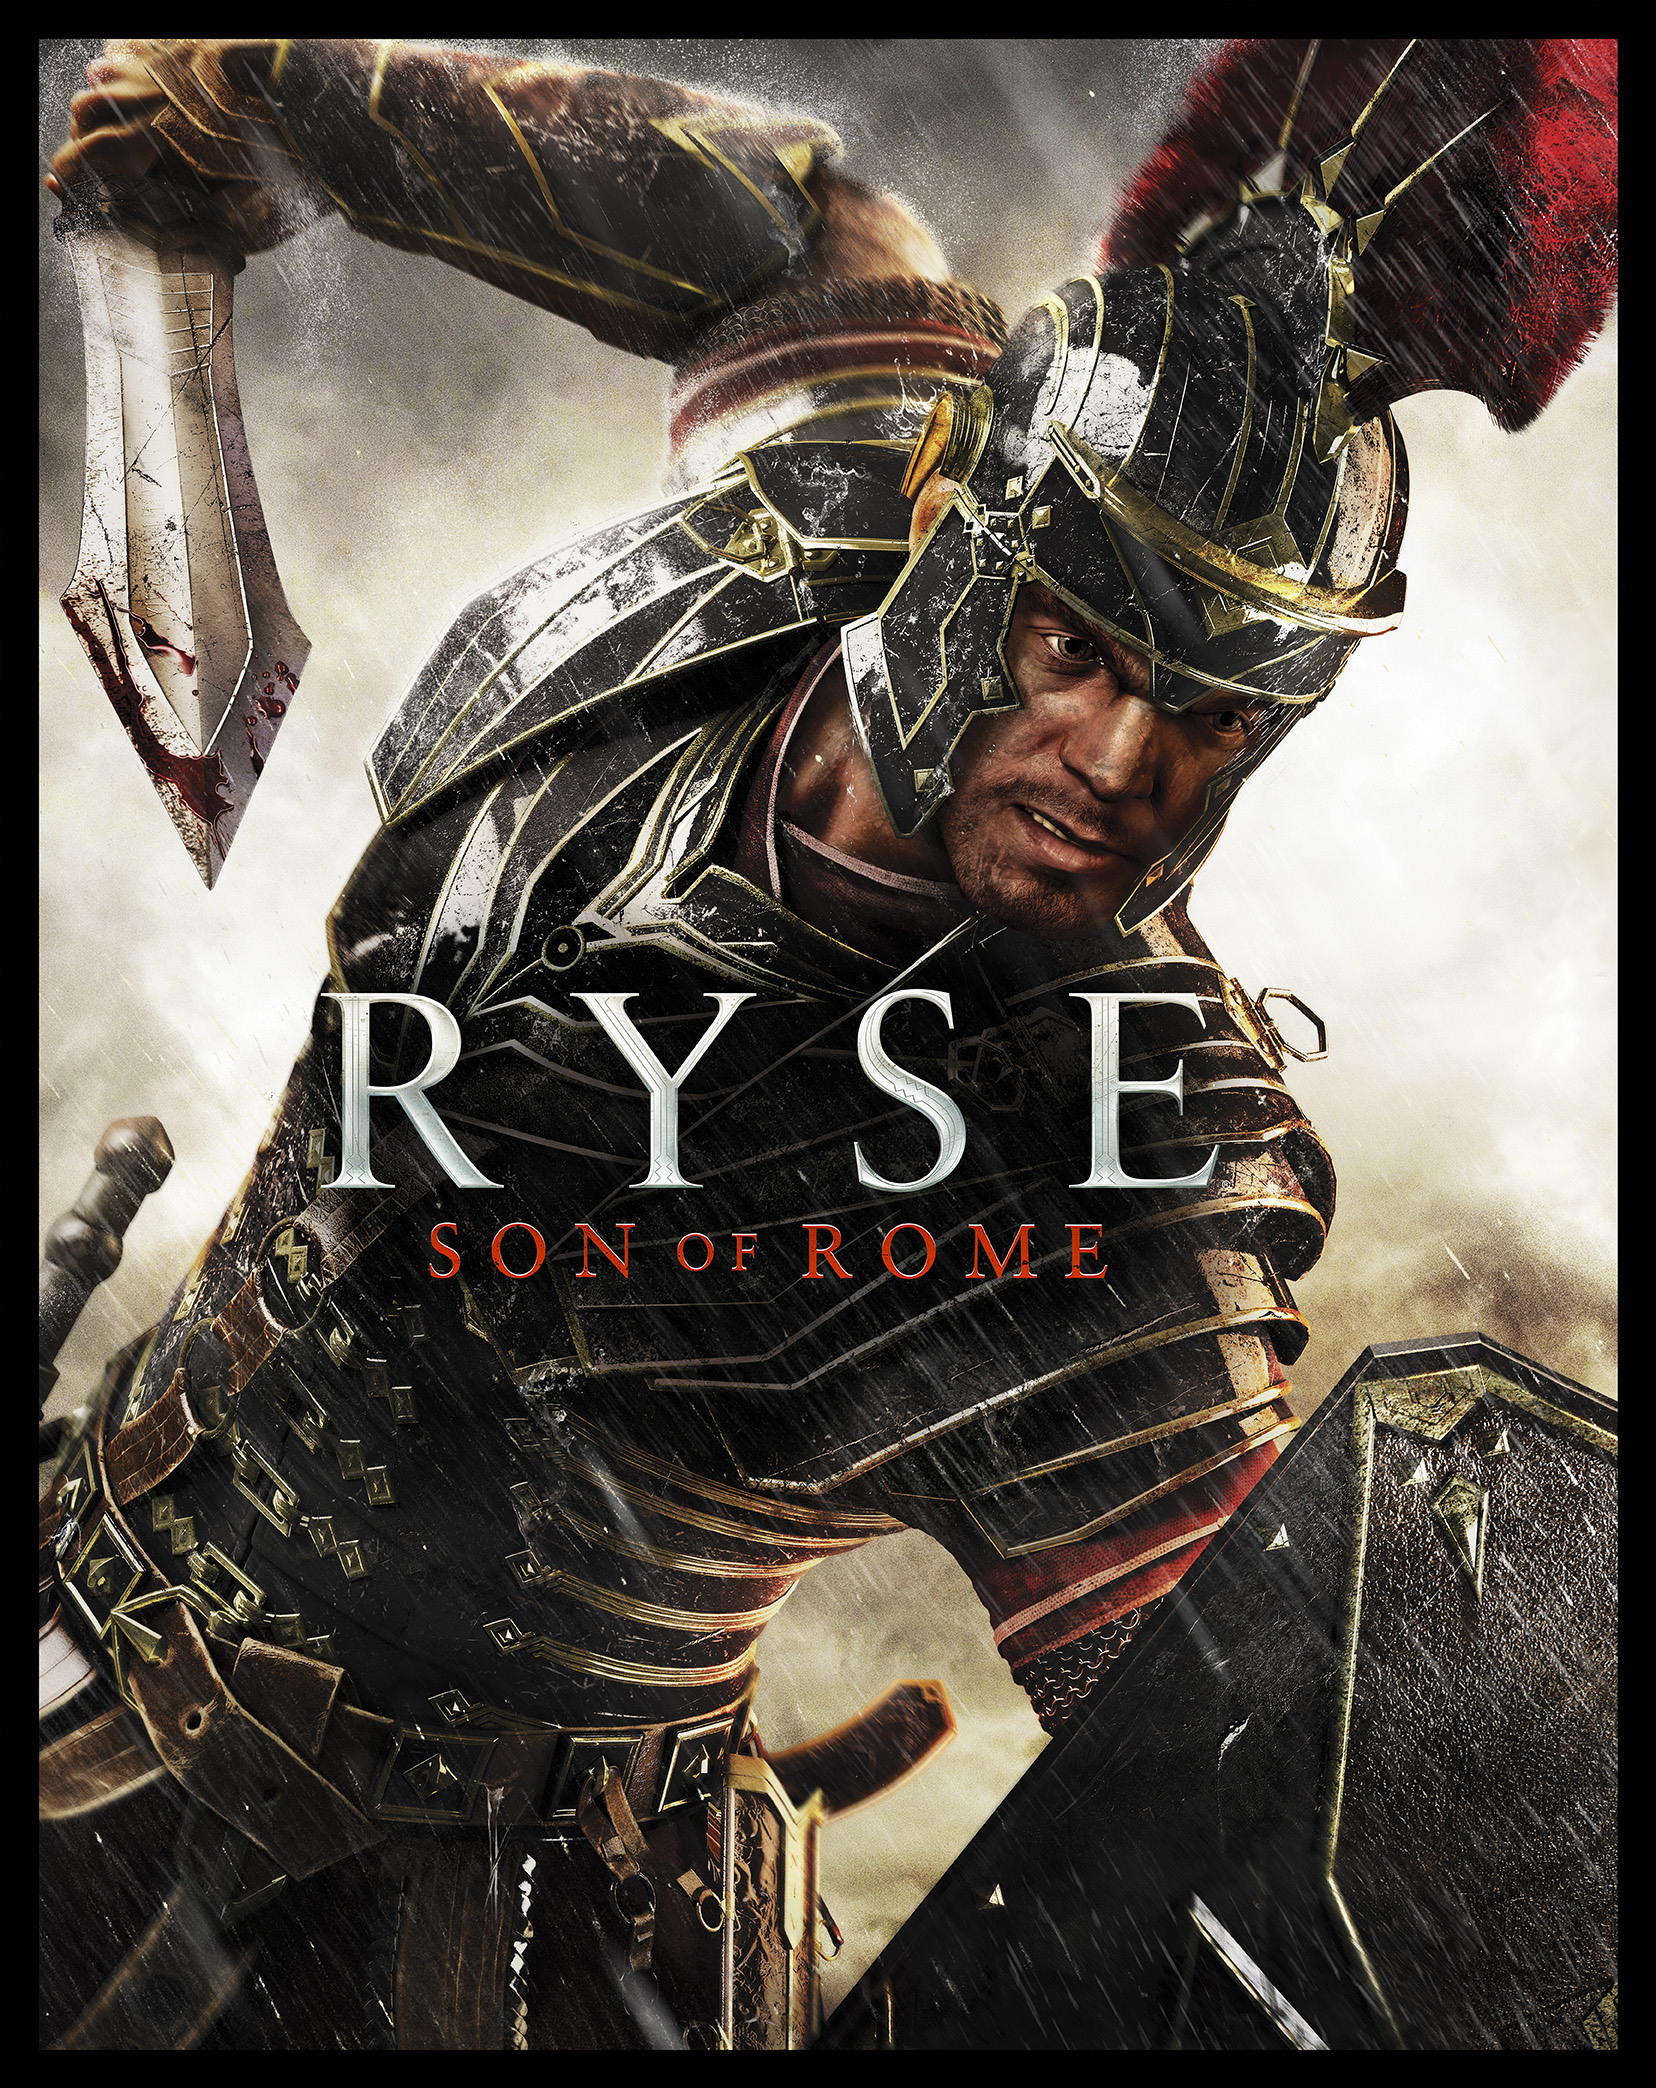 Xbox Games With Gold For April: The Walking Dead, Ryse, Assassin's Creed: Revelations